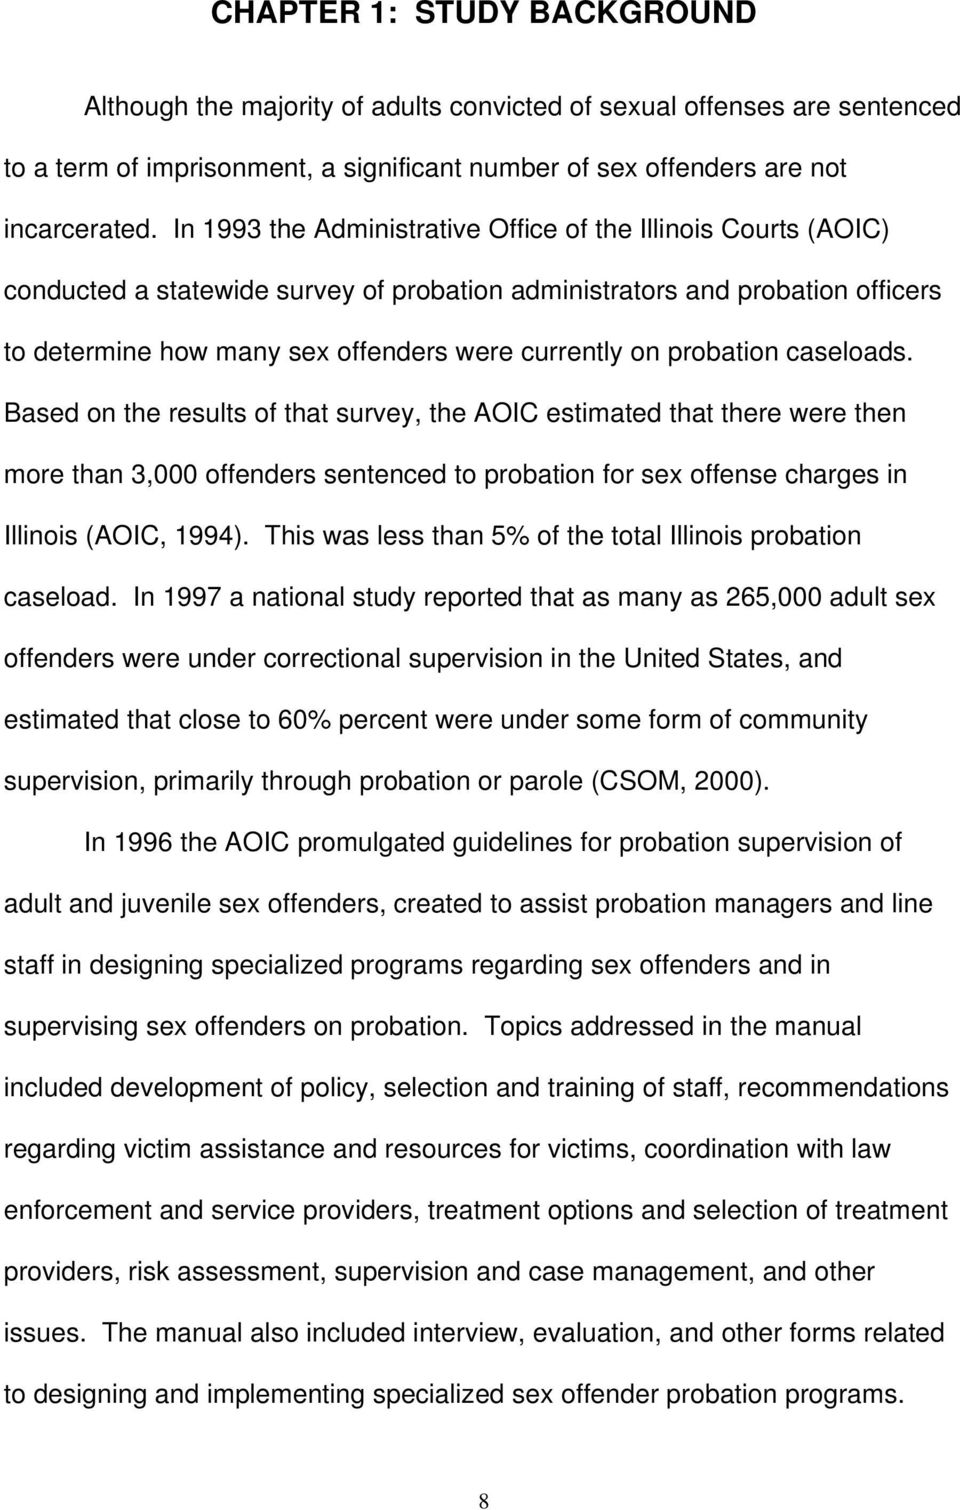 probation caseloads. Based on the results of that survey, the AOIC  estimated that there